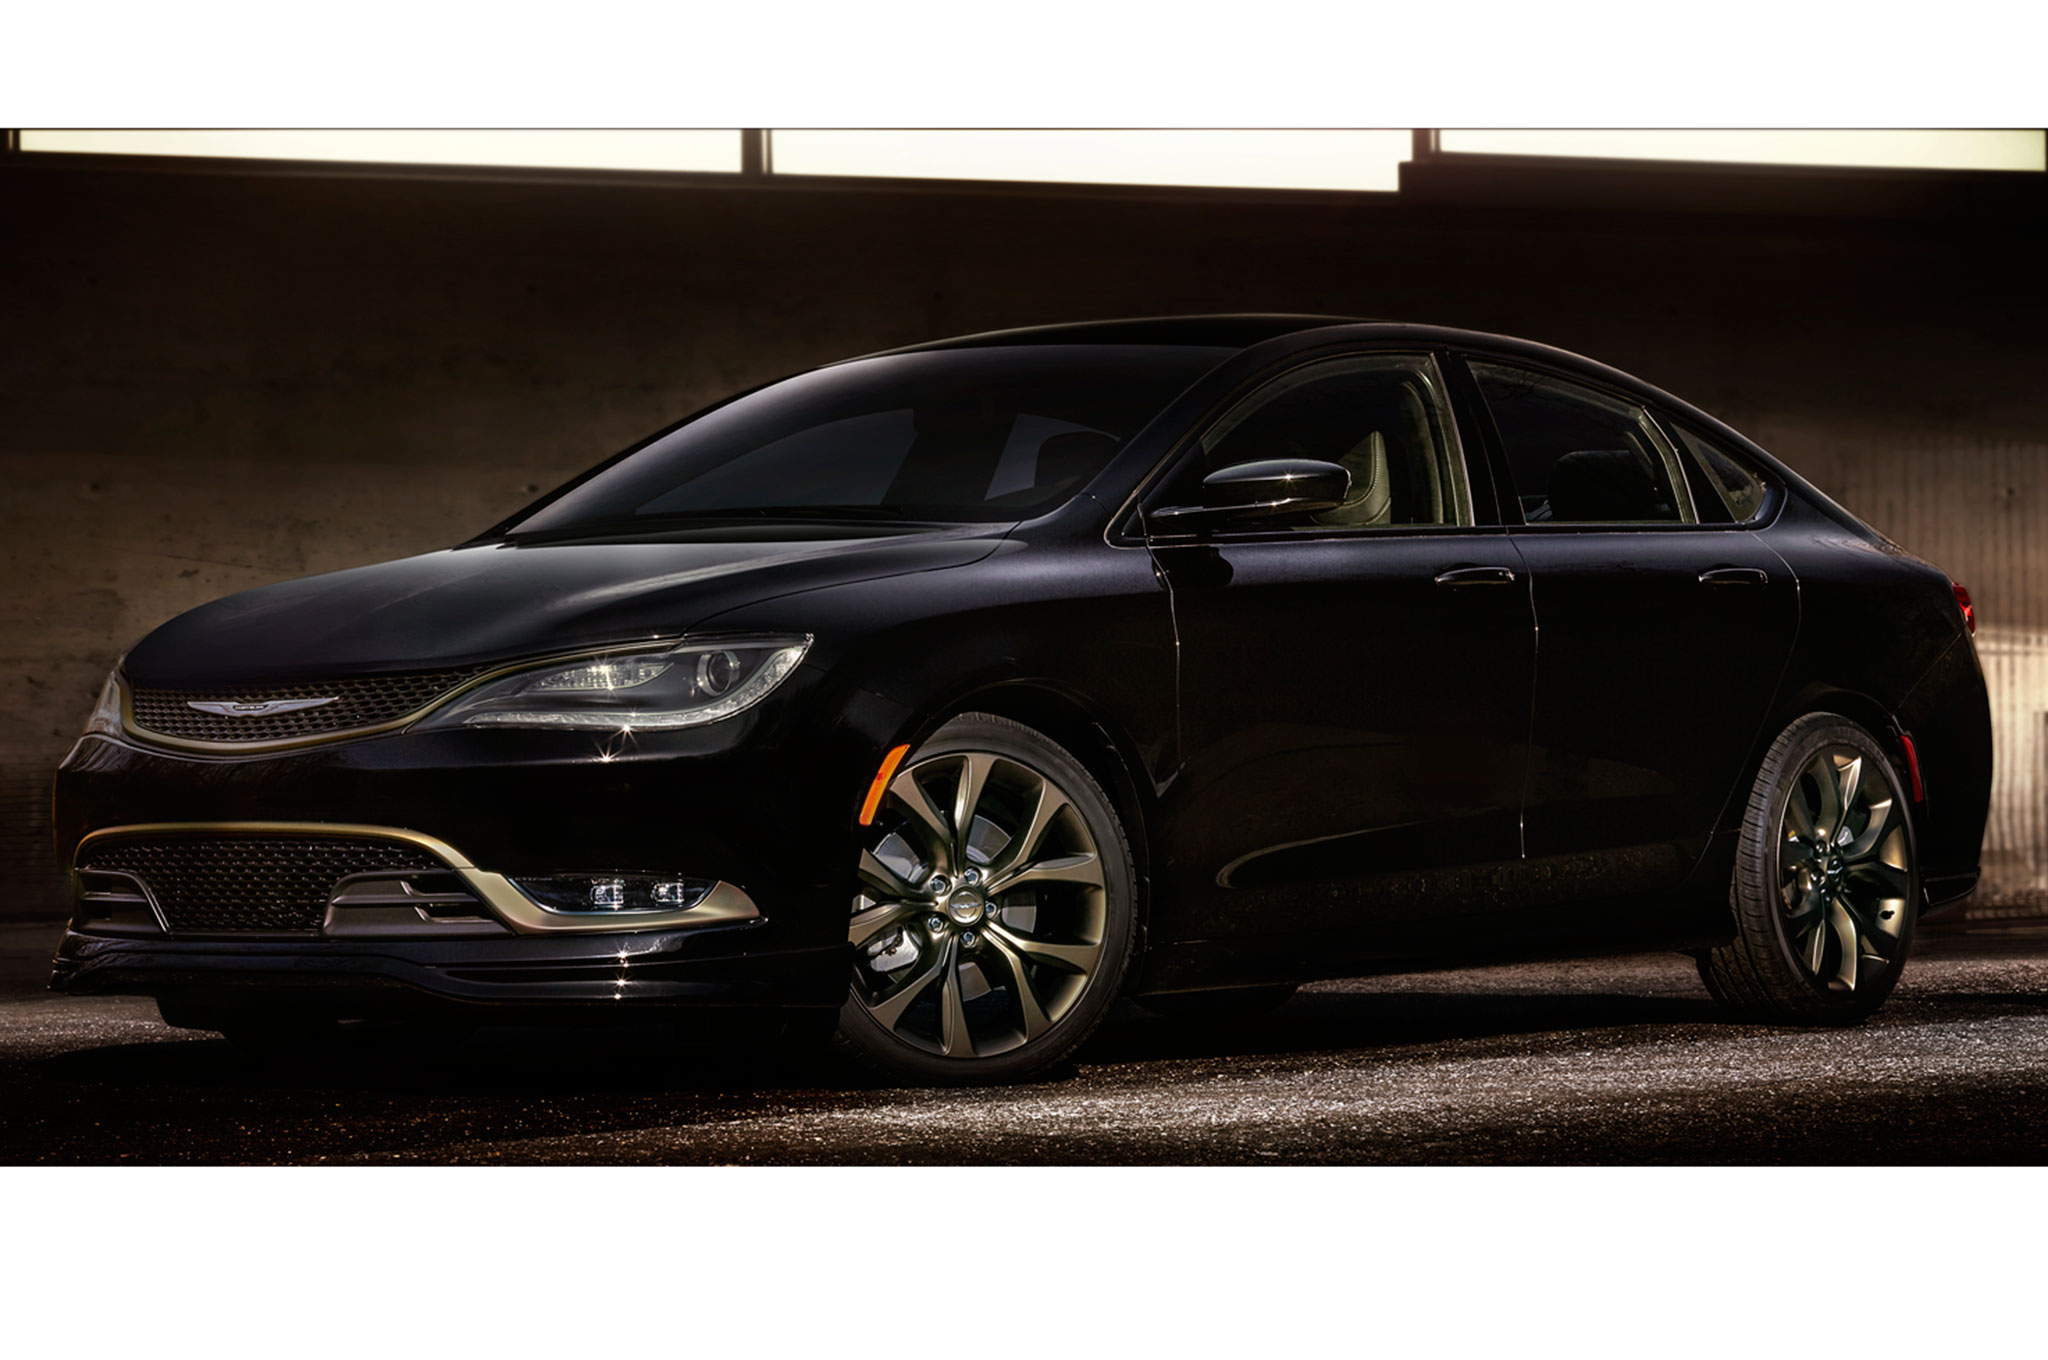 2016 chrysler 200s and 300s alloy editions revealed ahead of chicago. Black Bedroom Furniture Sets. Home Design Ideas